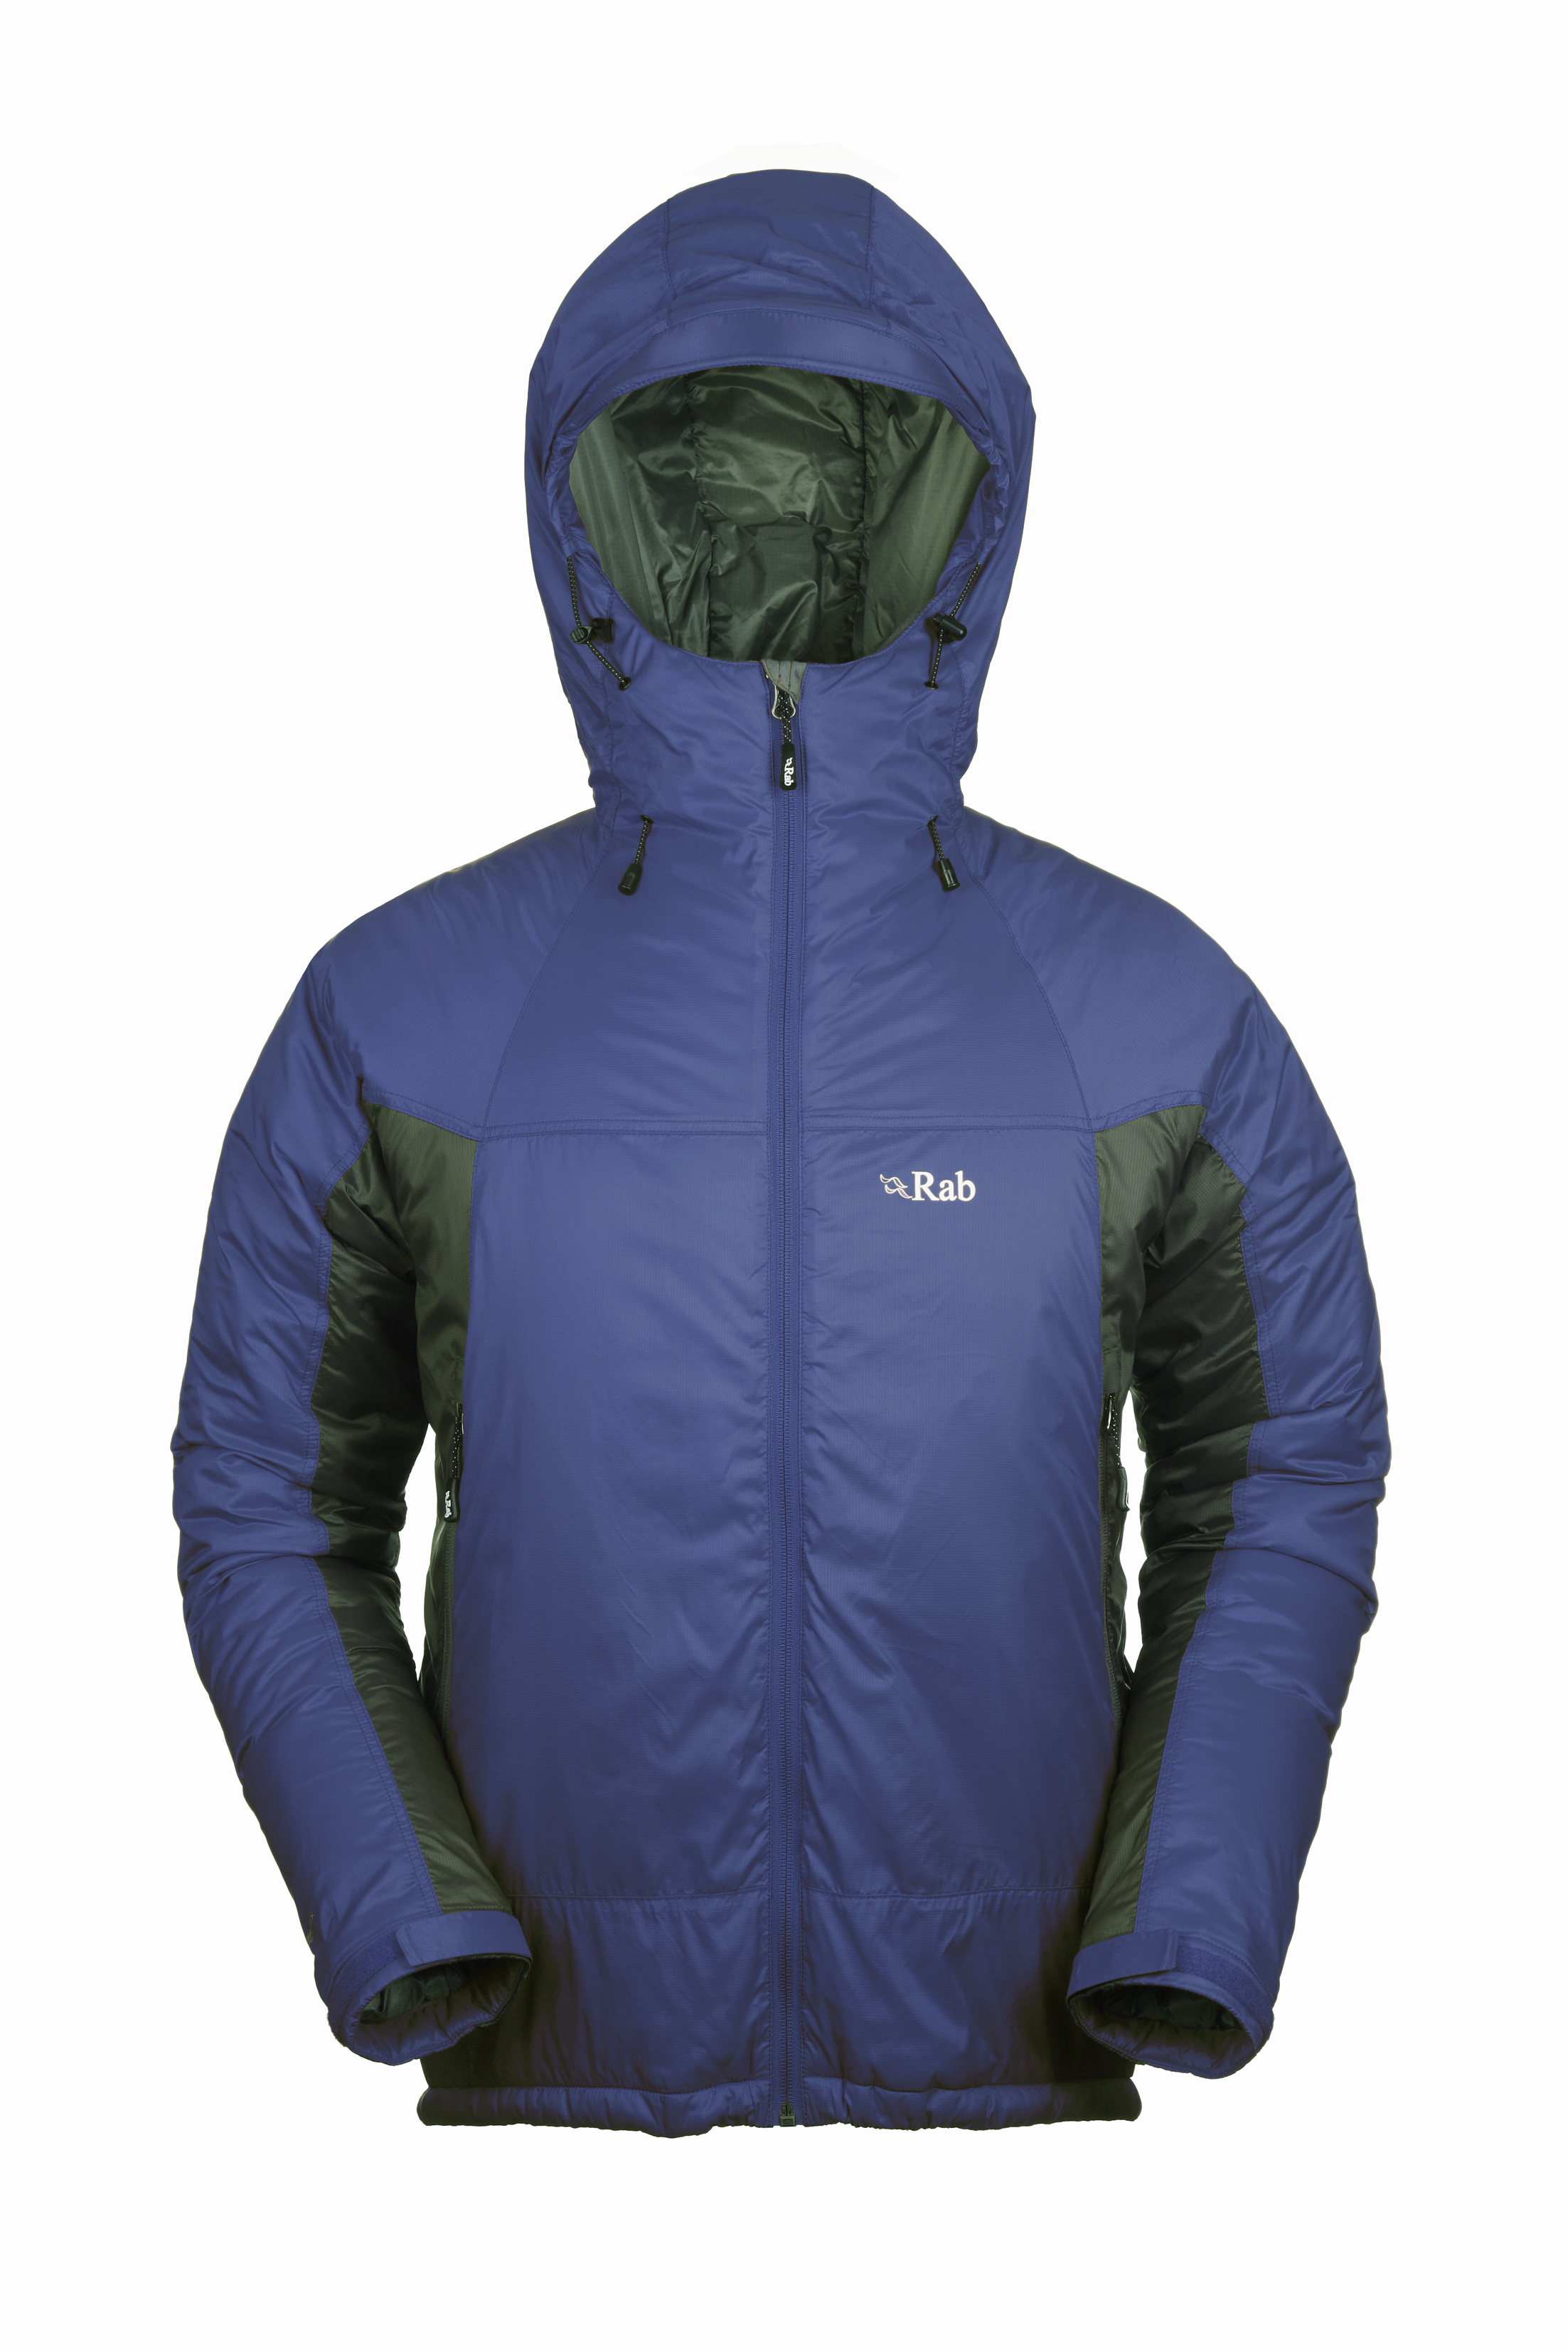 Rab Photon Men's Primaloft Jacket